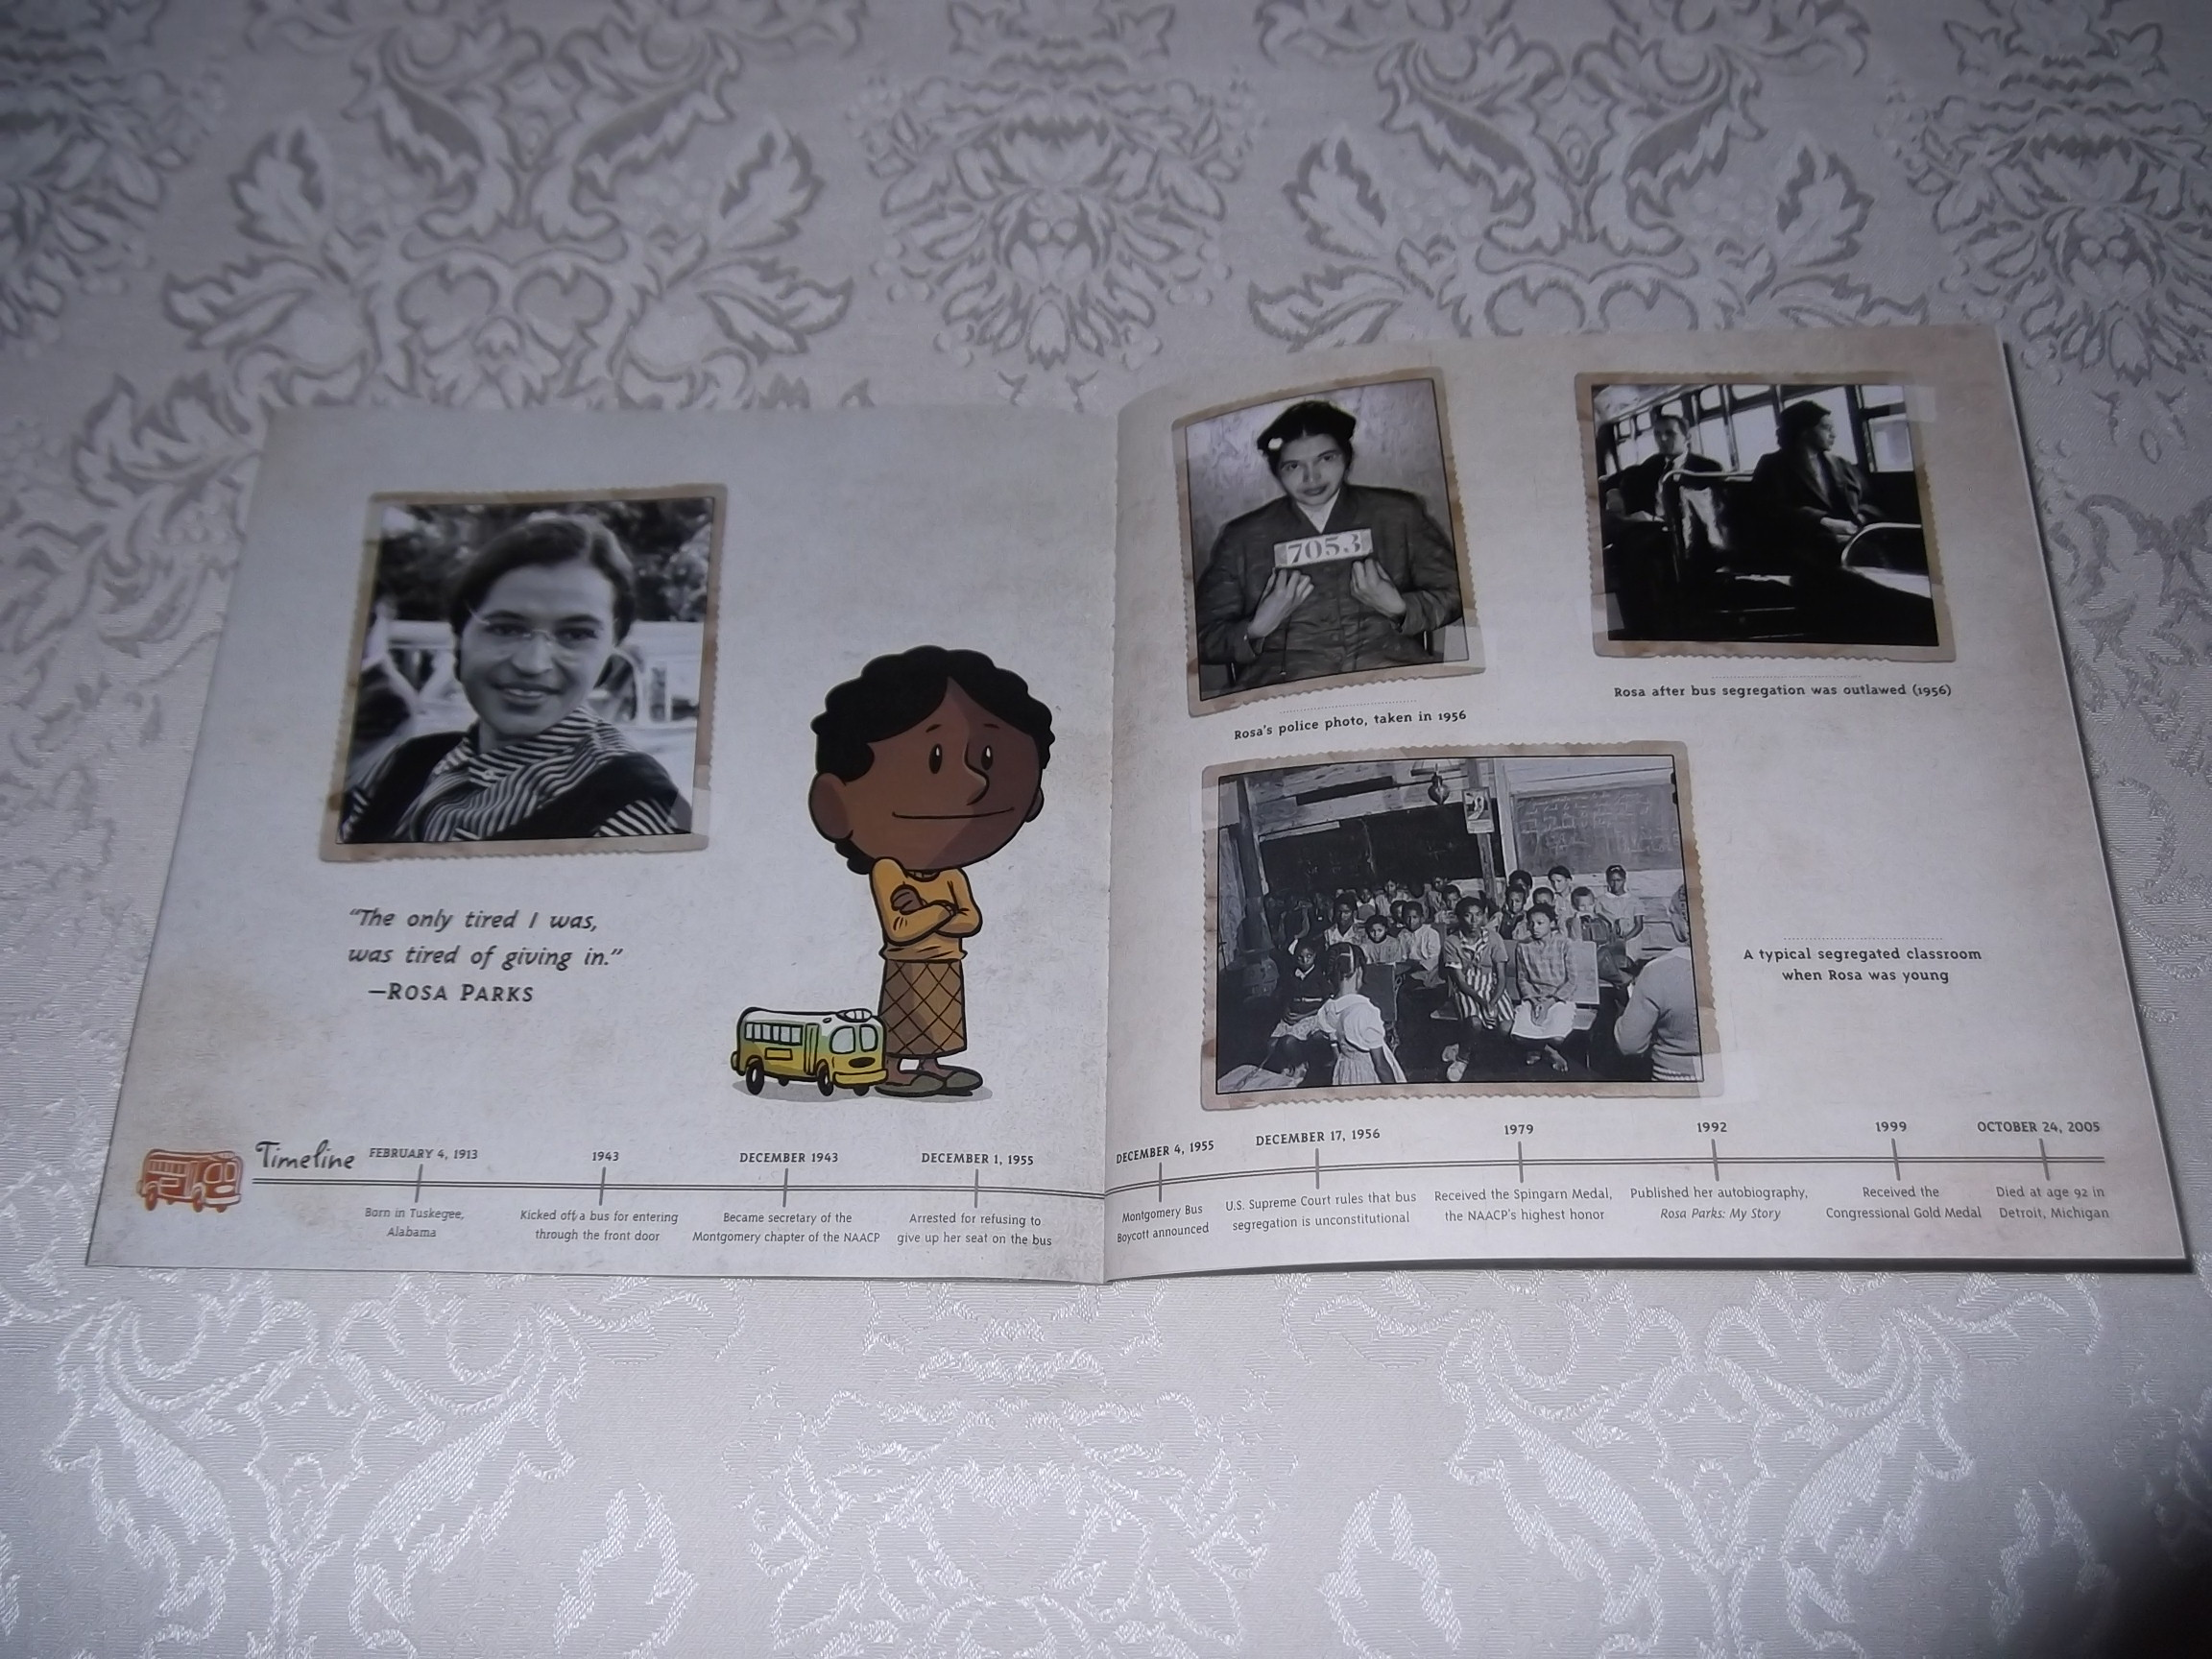 Image 4 of I am Rosa Parks Brad Meltzer Brand New SC Ordinary People Change The World